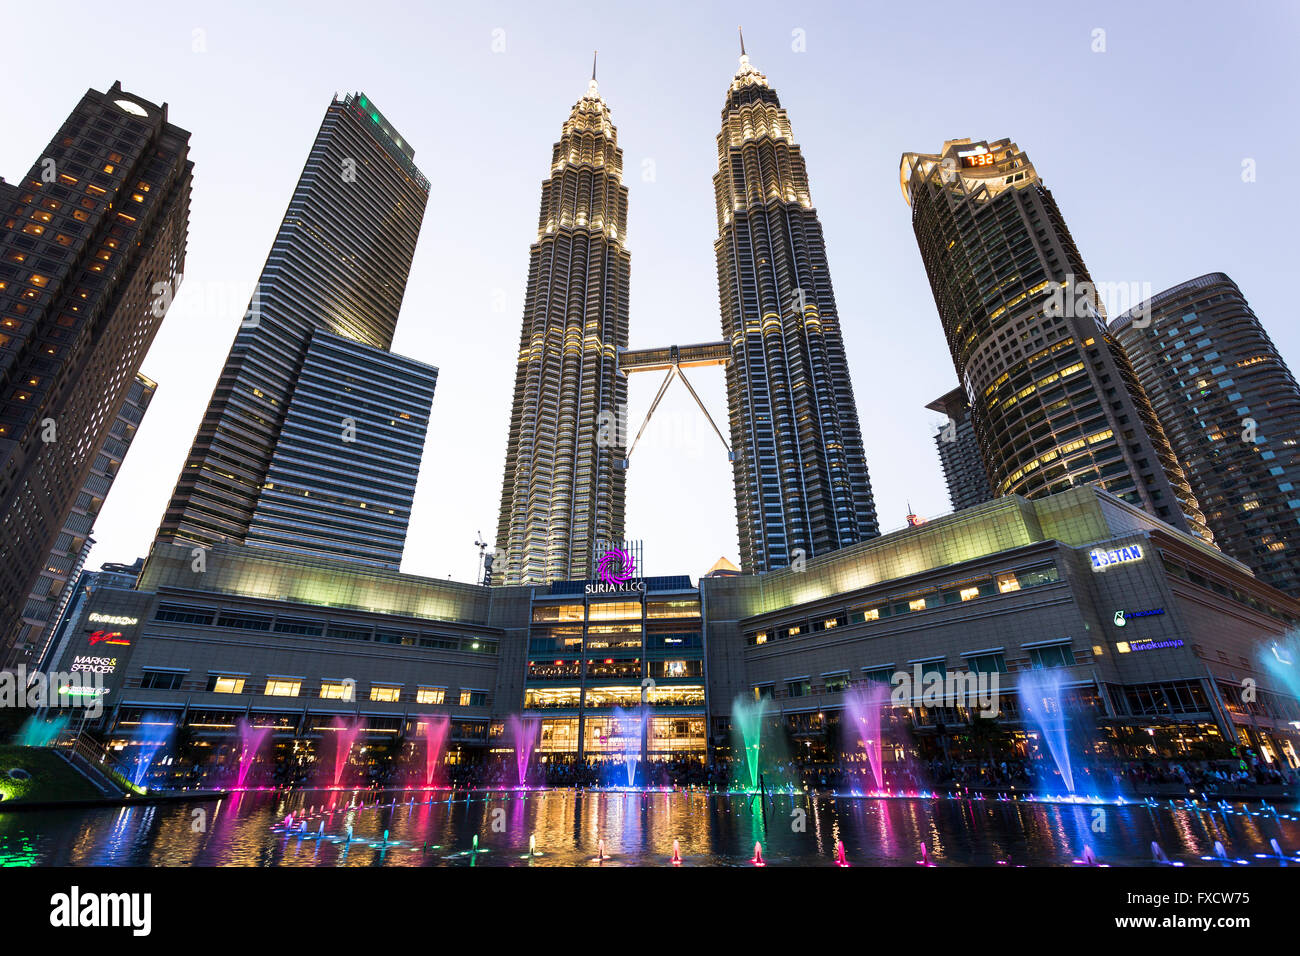 Kuala Lumpur, Malaysia - April: View of The Petronas Twin Towers and colorful water fountains - Stock Image